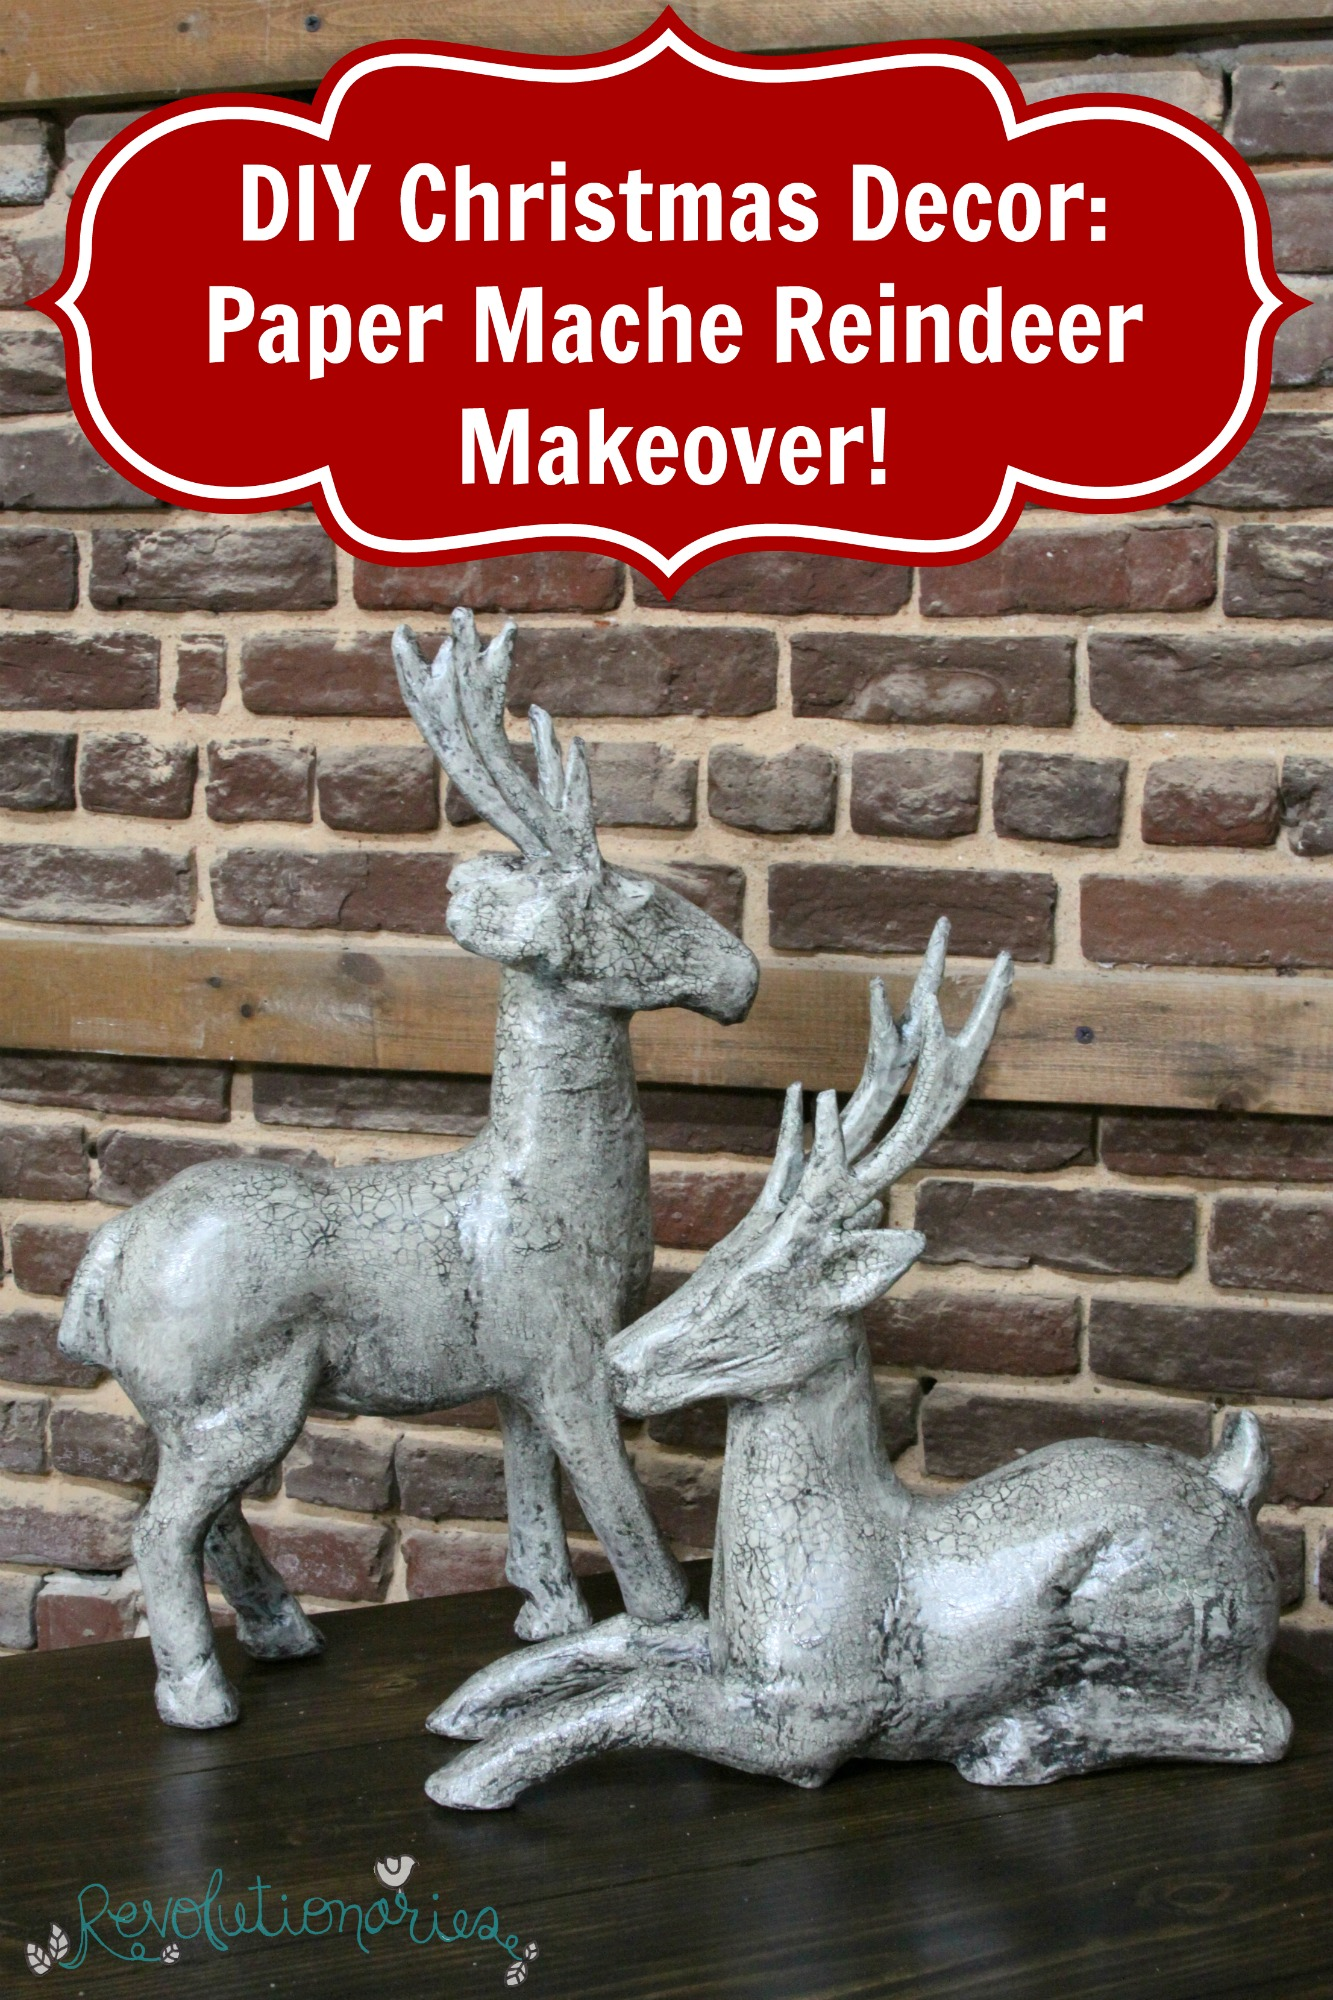 diy-christmas-decor-paper-mache-reindeer-makeover-2.jpg